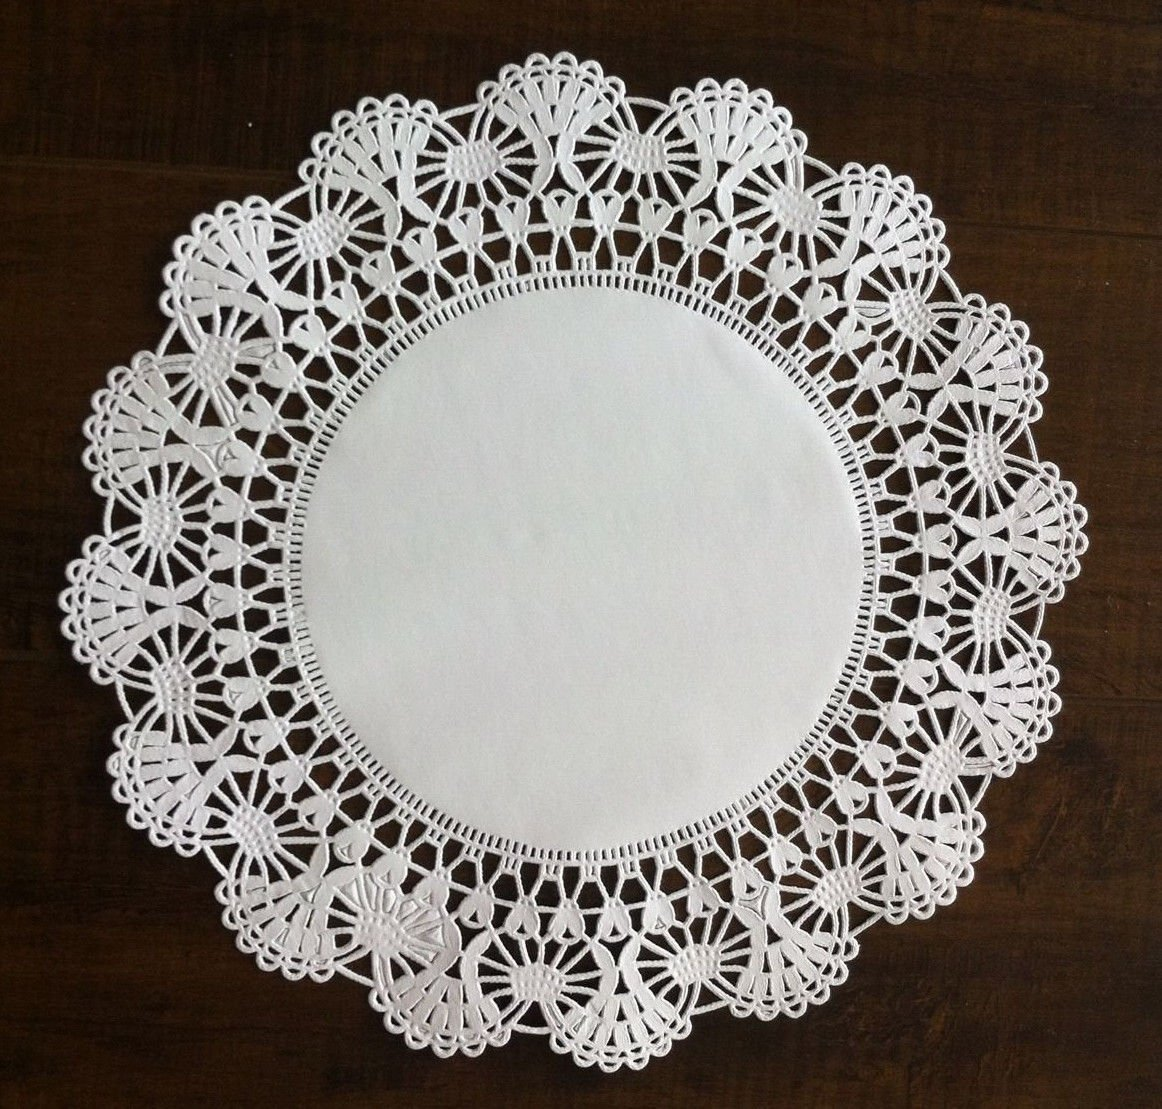 Round paper Lace Table Doilies – 4, 5, 6, 8, 10 and 12 inch Assorted Sizes; White Decorative Tableware papers Placemats, (Variety pack of 120 – 20 of each) by The Baker Celebrations (Image #6)